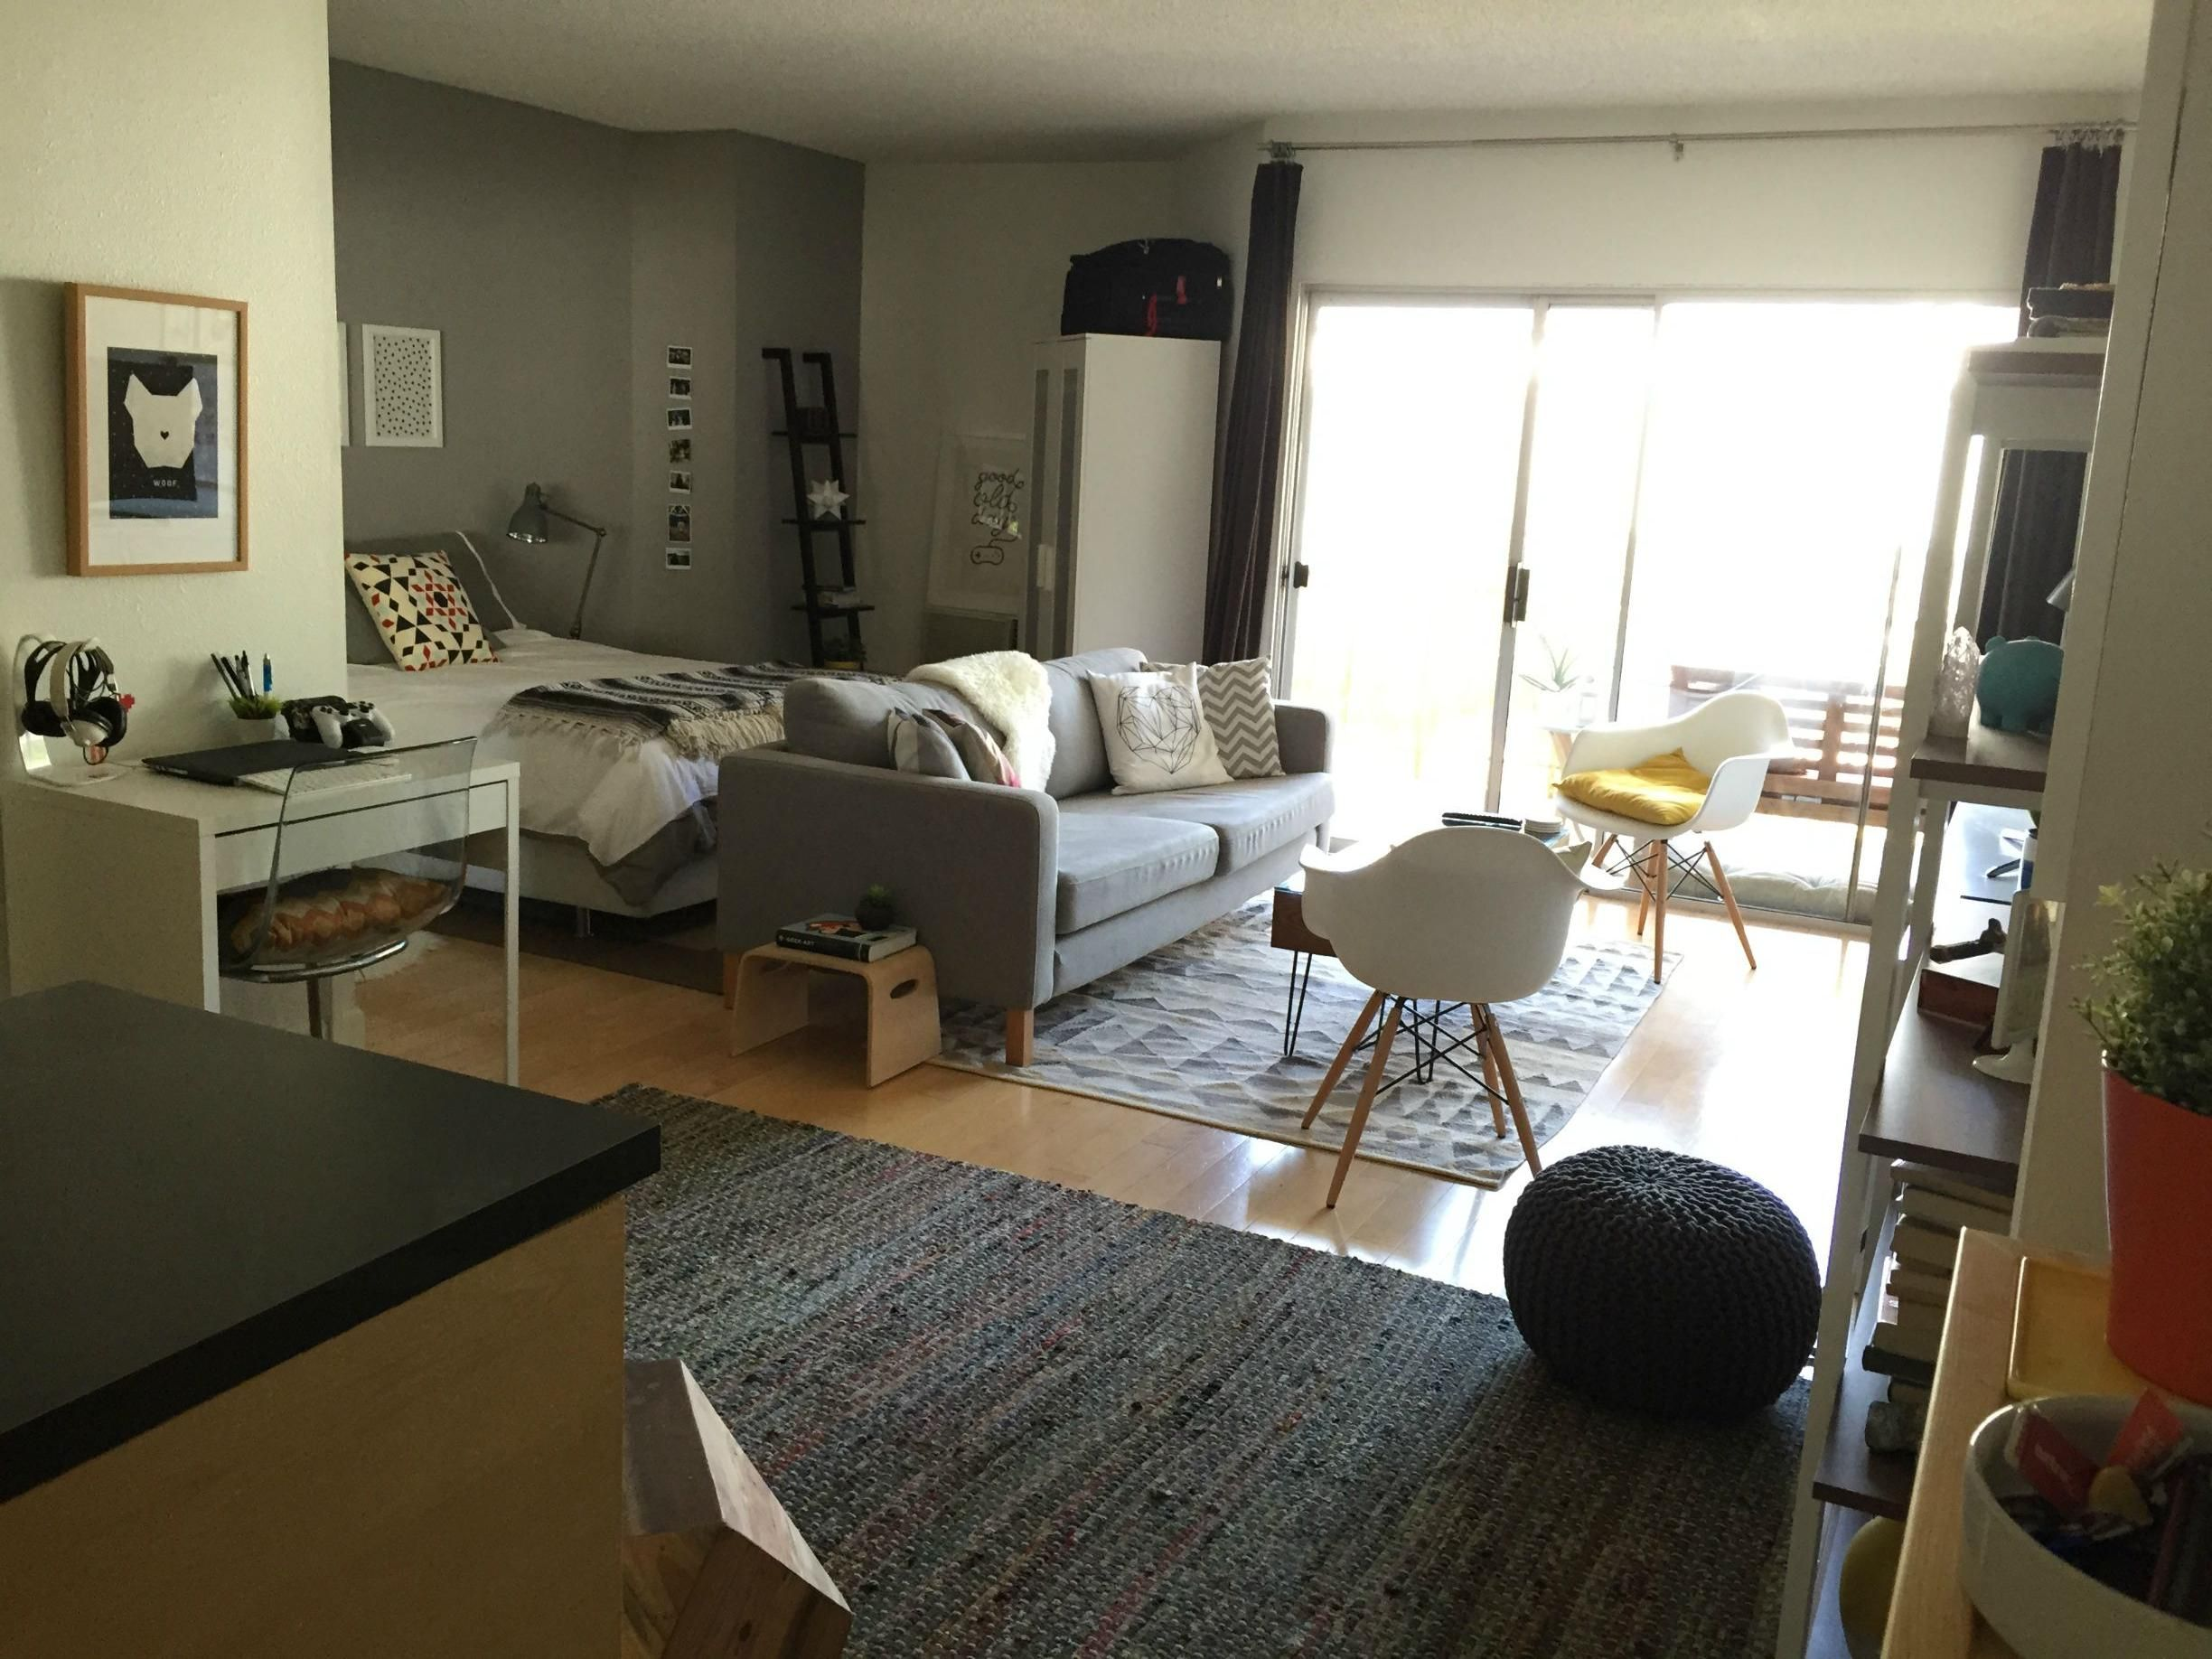 Studio Apartment Furniture Layout My Los Angeles Studio 2015 Nayirah 39s Mccoy Andtayah